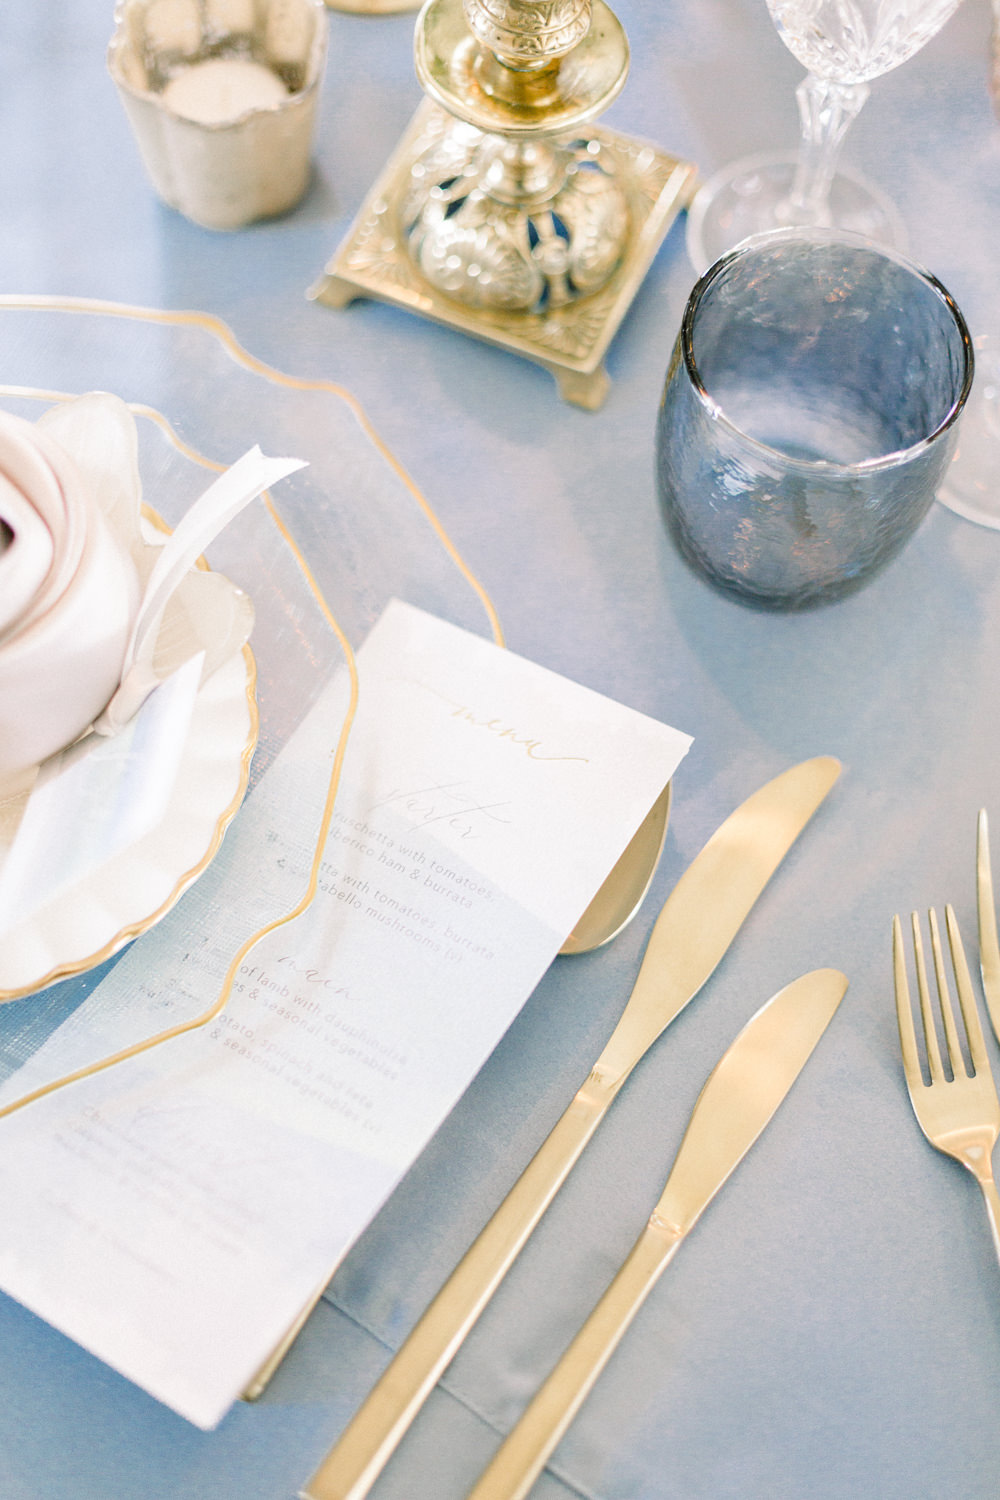 Stationery Gold Cutlery Glasses Winter Blue Barn Wedding Ideas Joanna Briggs Photography